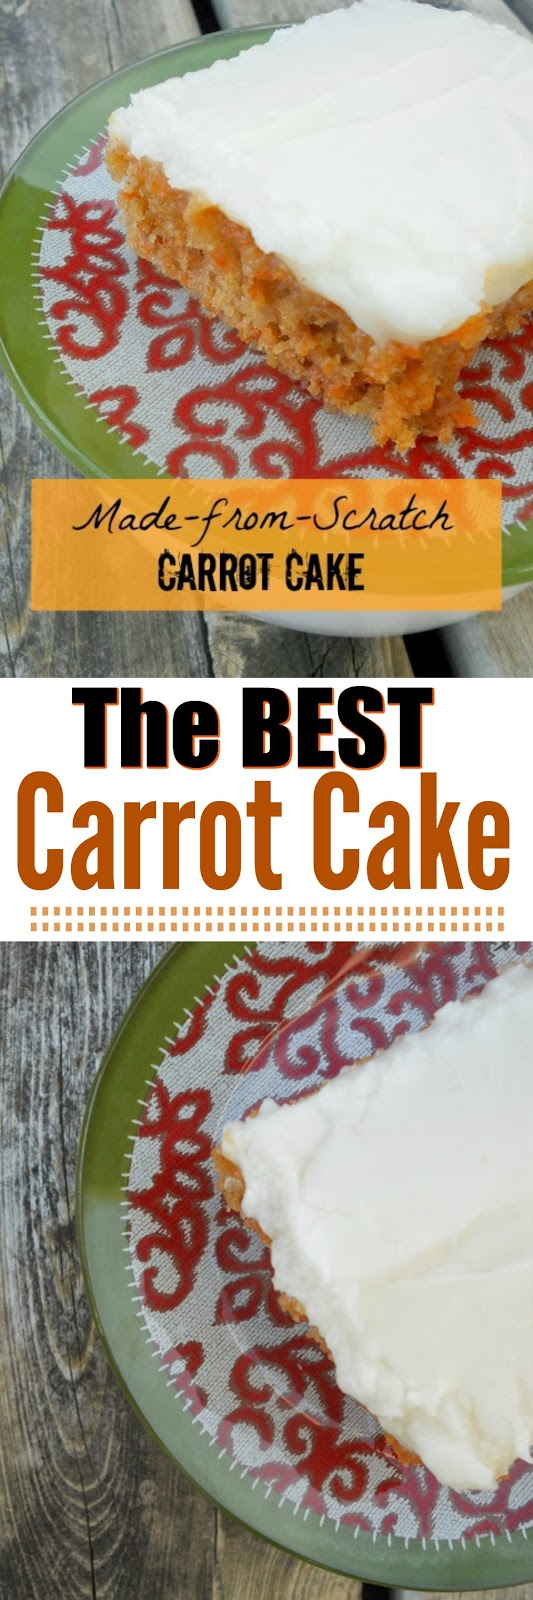 made from scrach carrot cake (sweetandsavoryfood.com)